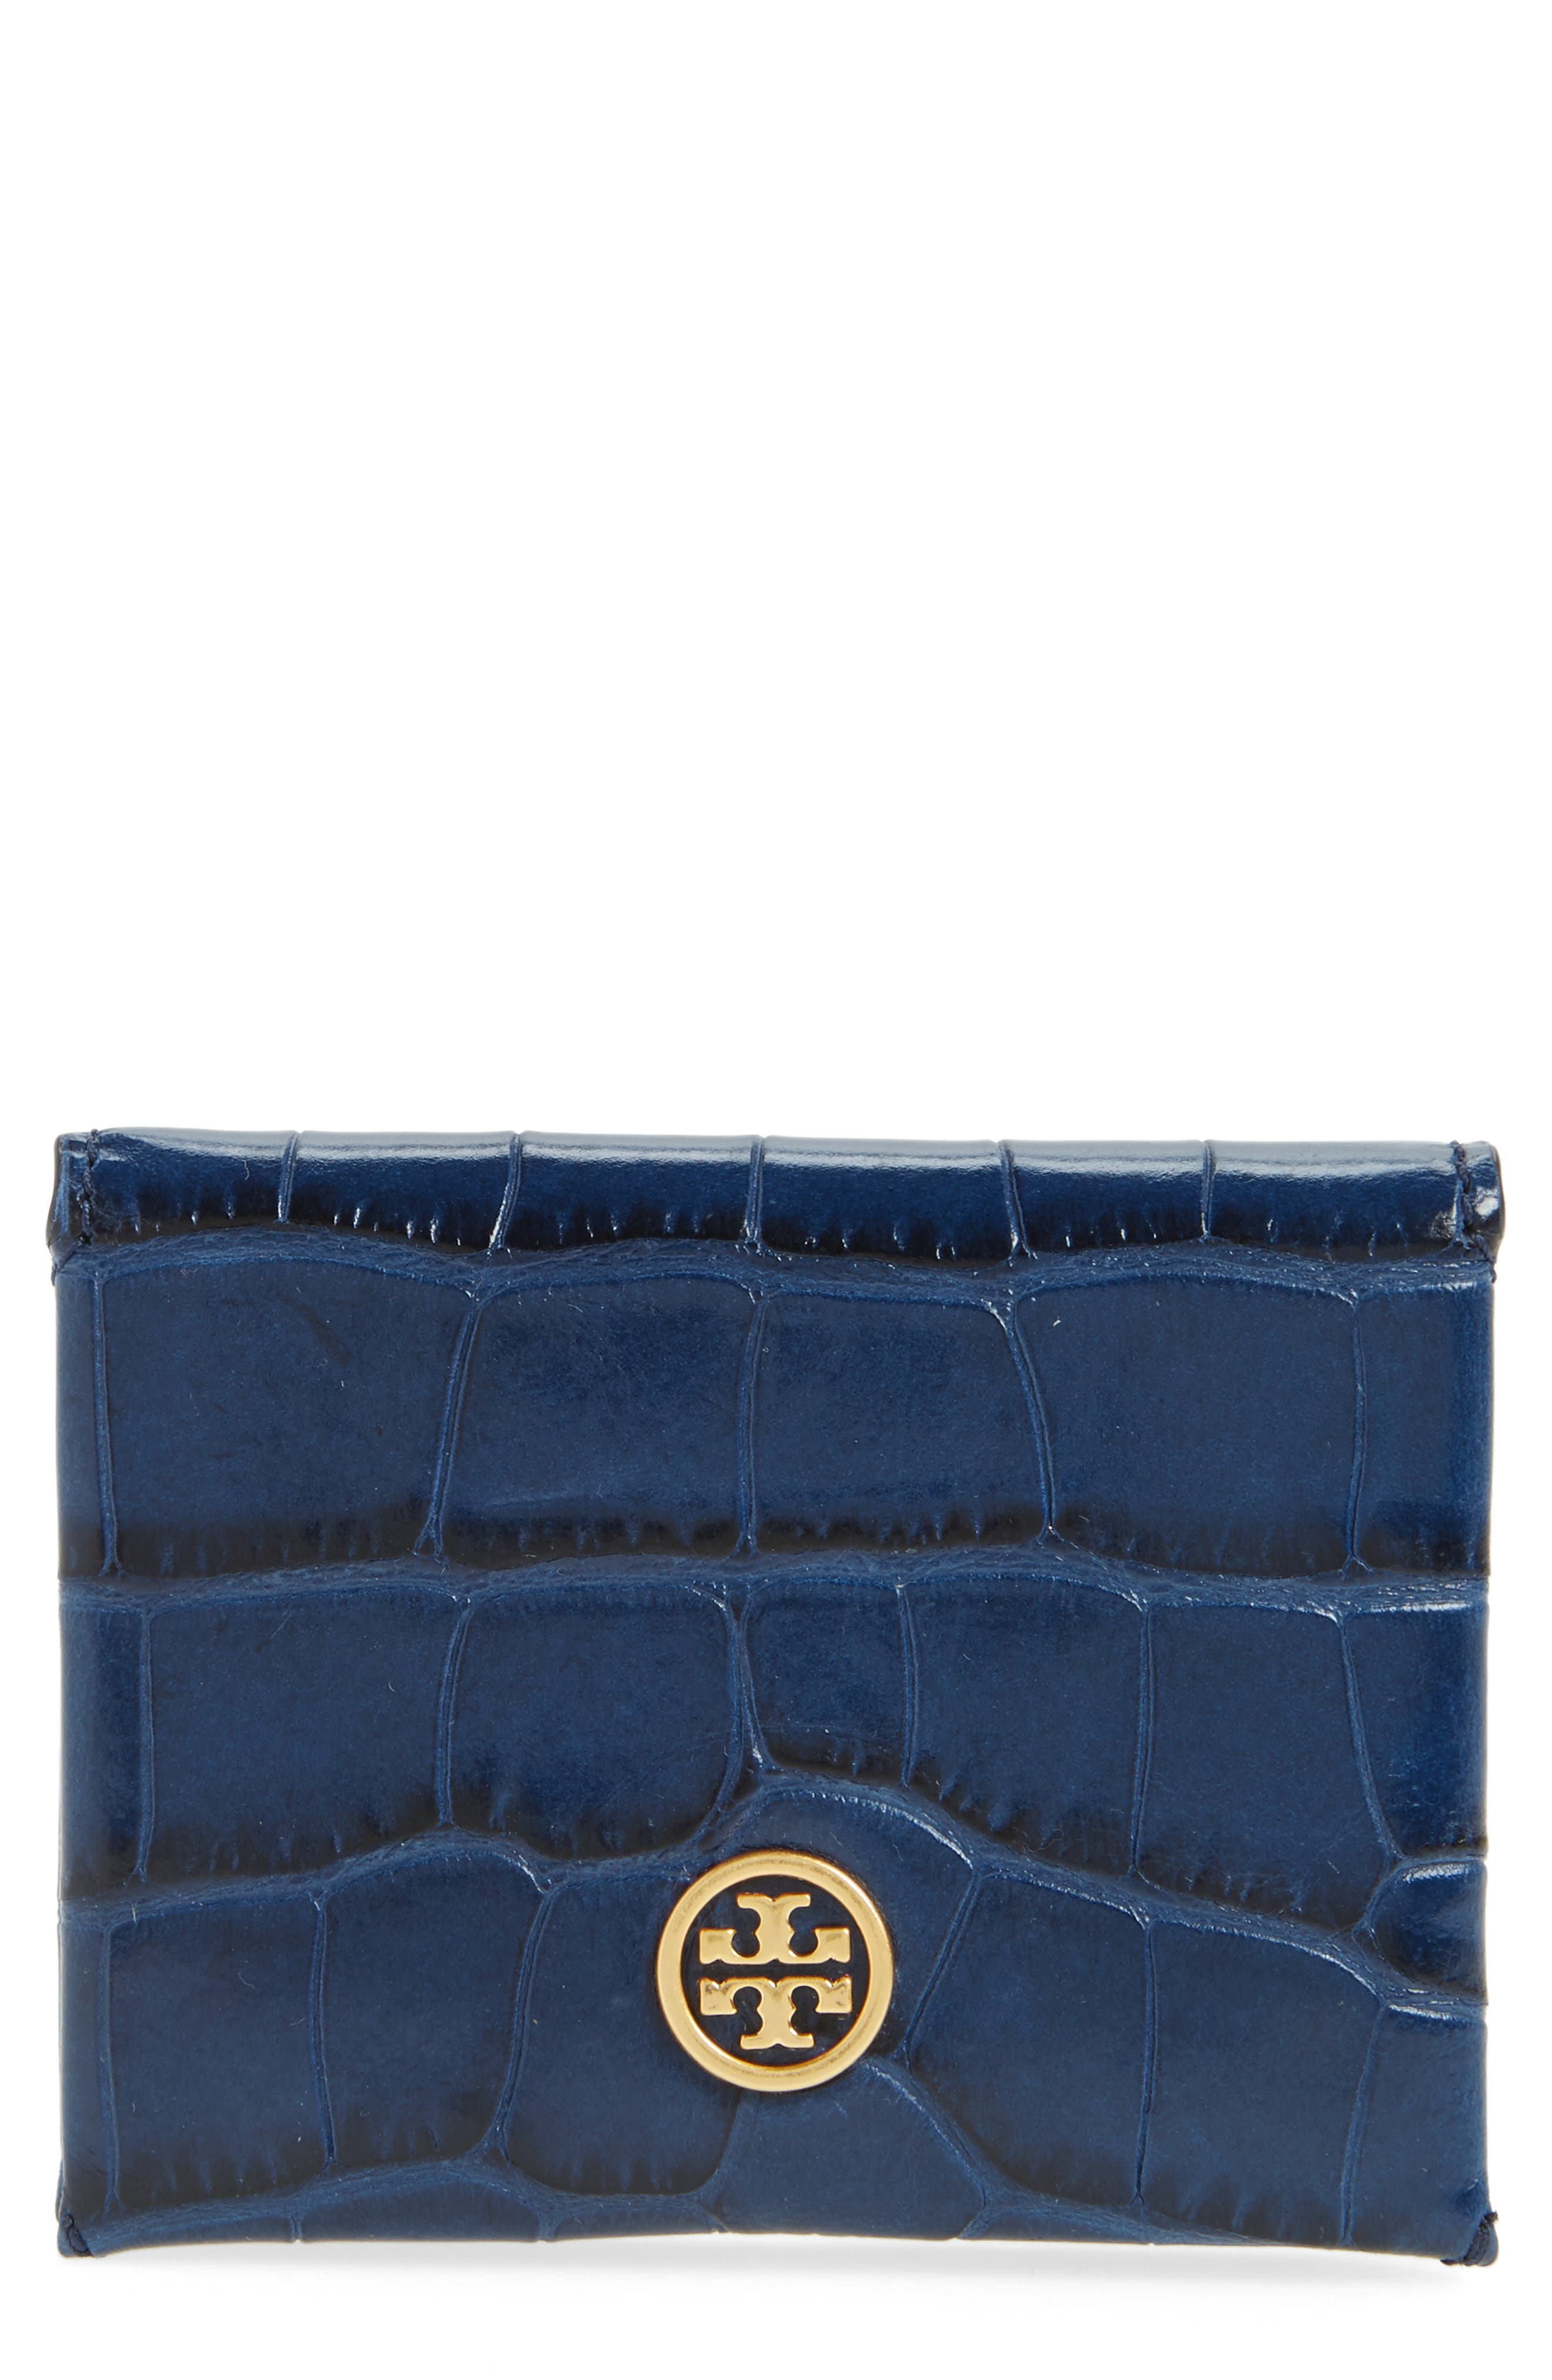 Parker Croc Embossed Leather Card Case,                             Main thumbnail 1, color,                             Tory Navy Croc